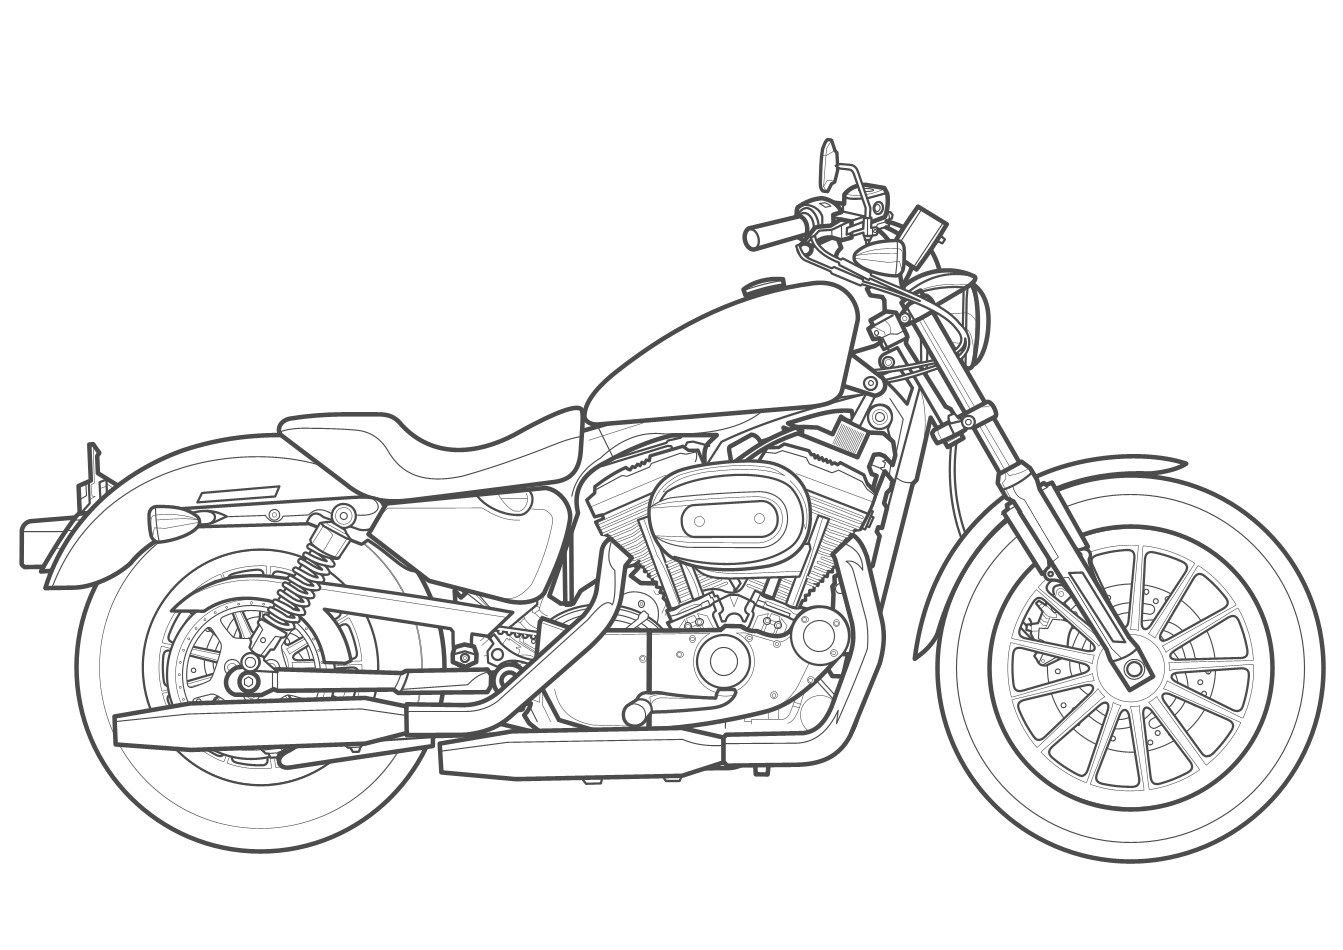 Harley Davidson Motorcycle Drawing at GetDrawings.com